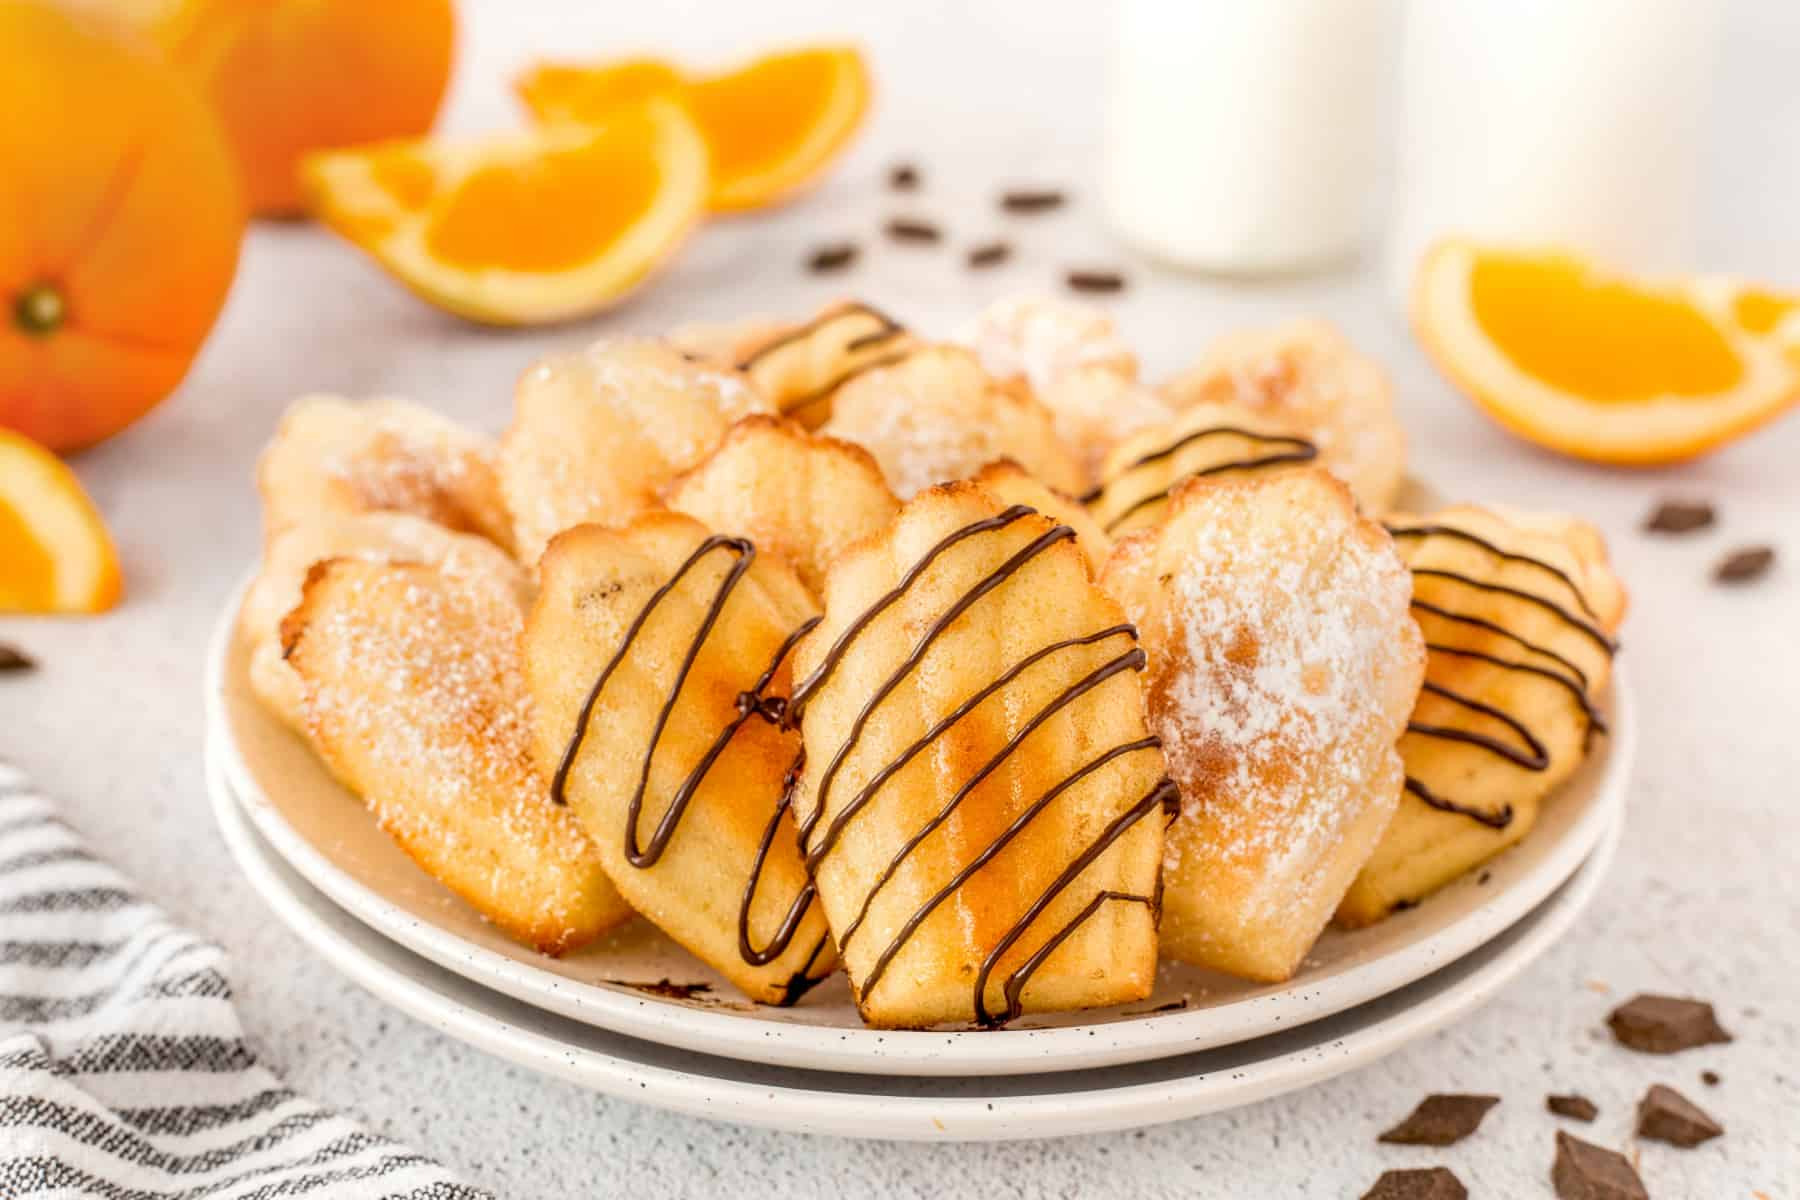 Horizontal shot of madeleines on a plate with sliced oranges in the background.